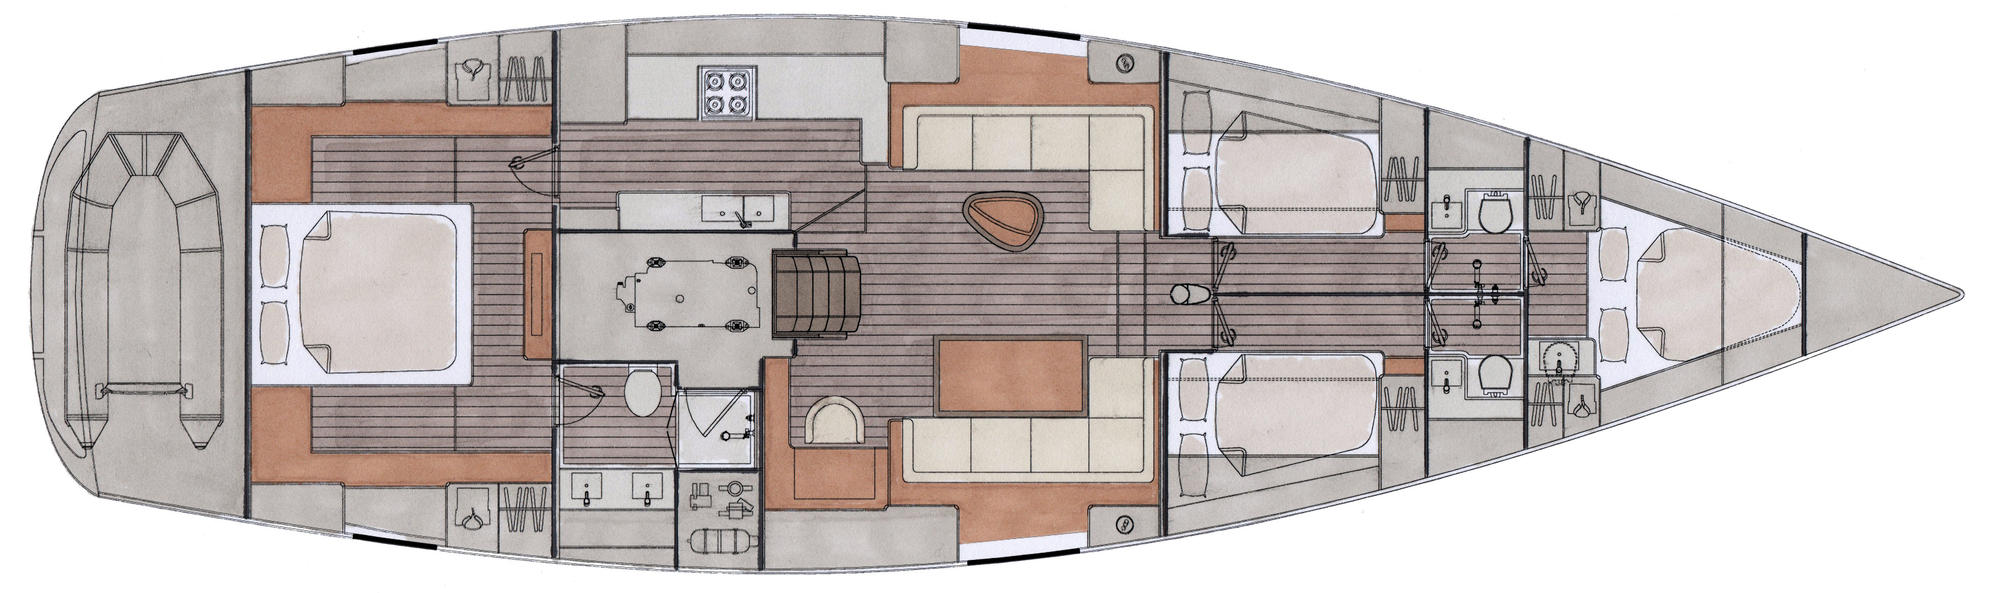 Conyplex Contest 62 CS - contest_62cs_interior_layout_b.jpg